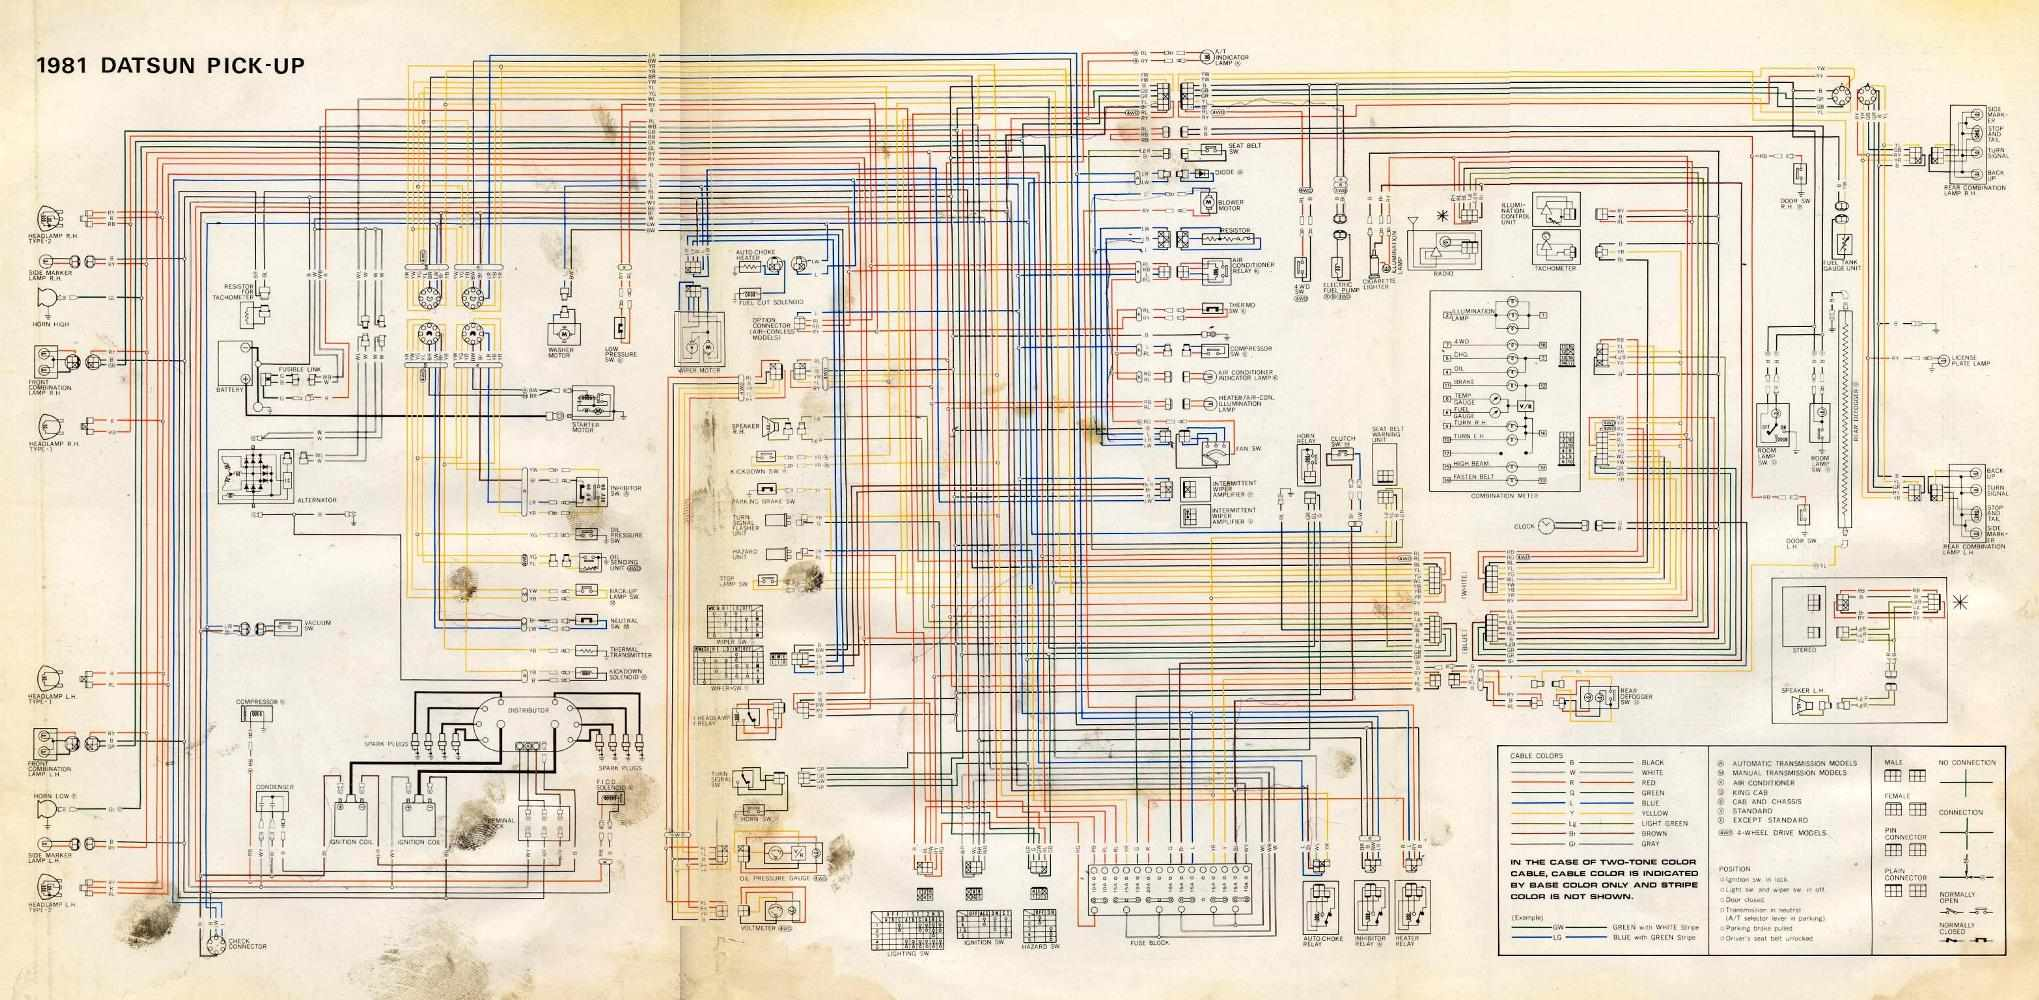 Through Chevrolet Truck Wiring Diagram on 1965 chevrolet truck wiring diagram, 1976 chevrolet truck wiring diagram, 1962 chevrolet truck wiring diagram, 1977 chevrolet truck brochure, 1971 chevrolet truck wiring diagram, 1977 chevrolet truck parts, 1956 chevrolet truck wiring diagram, 1977 chevrolet g30 camper van, 1954 chevrolet truck wiring diagram, 1948 chevrolet truck wiring diagram, 1959 chevrolet truck wiring diagram, 1929 chevrolet truck wiring diagram, 1969 chevrolet truck wiring diagram, 1968 chevrolet truck wiring diagram, 1979 chevrolet truck wiring diagram, 1974 chevrolet truck wiring diagram, 1996 chevrolet truck wiring diagram, 1957 chevrolet truck wiring diagram, 1998 chevrolet truck wiring diagram, 1972 chevrolet truck wiring diagram,